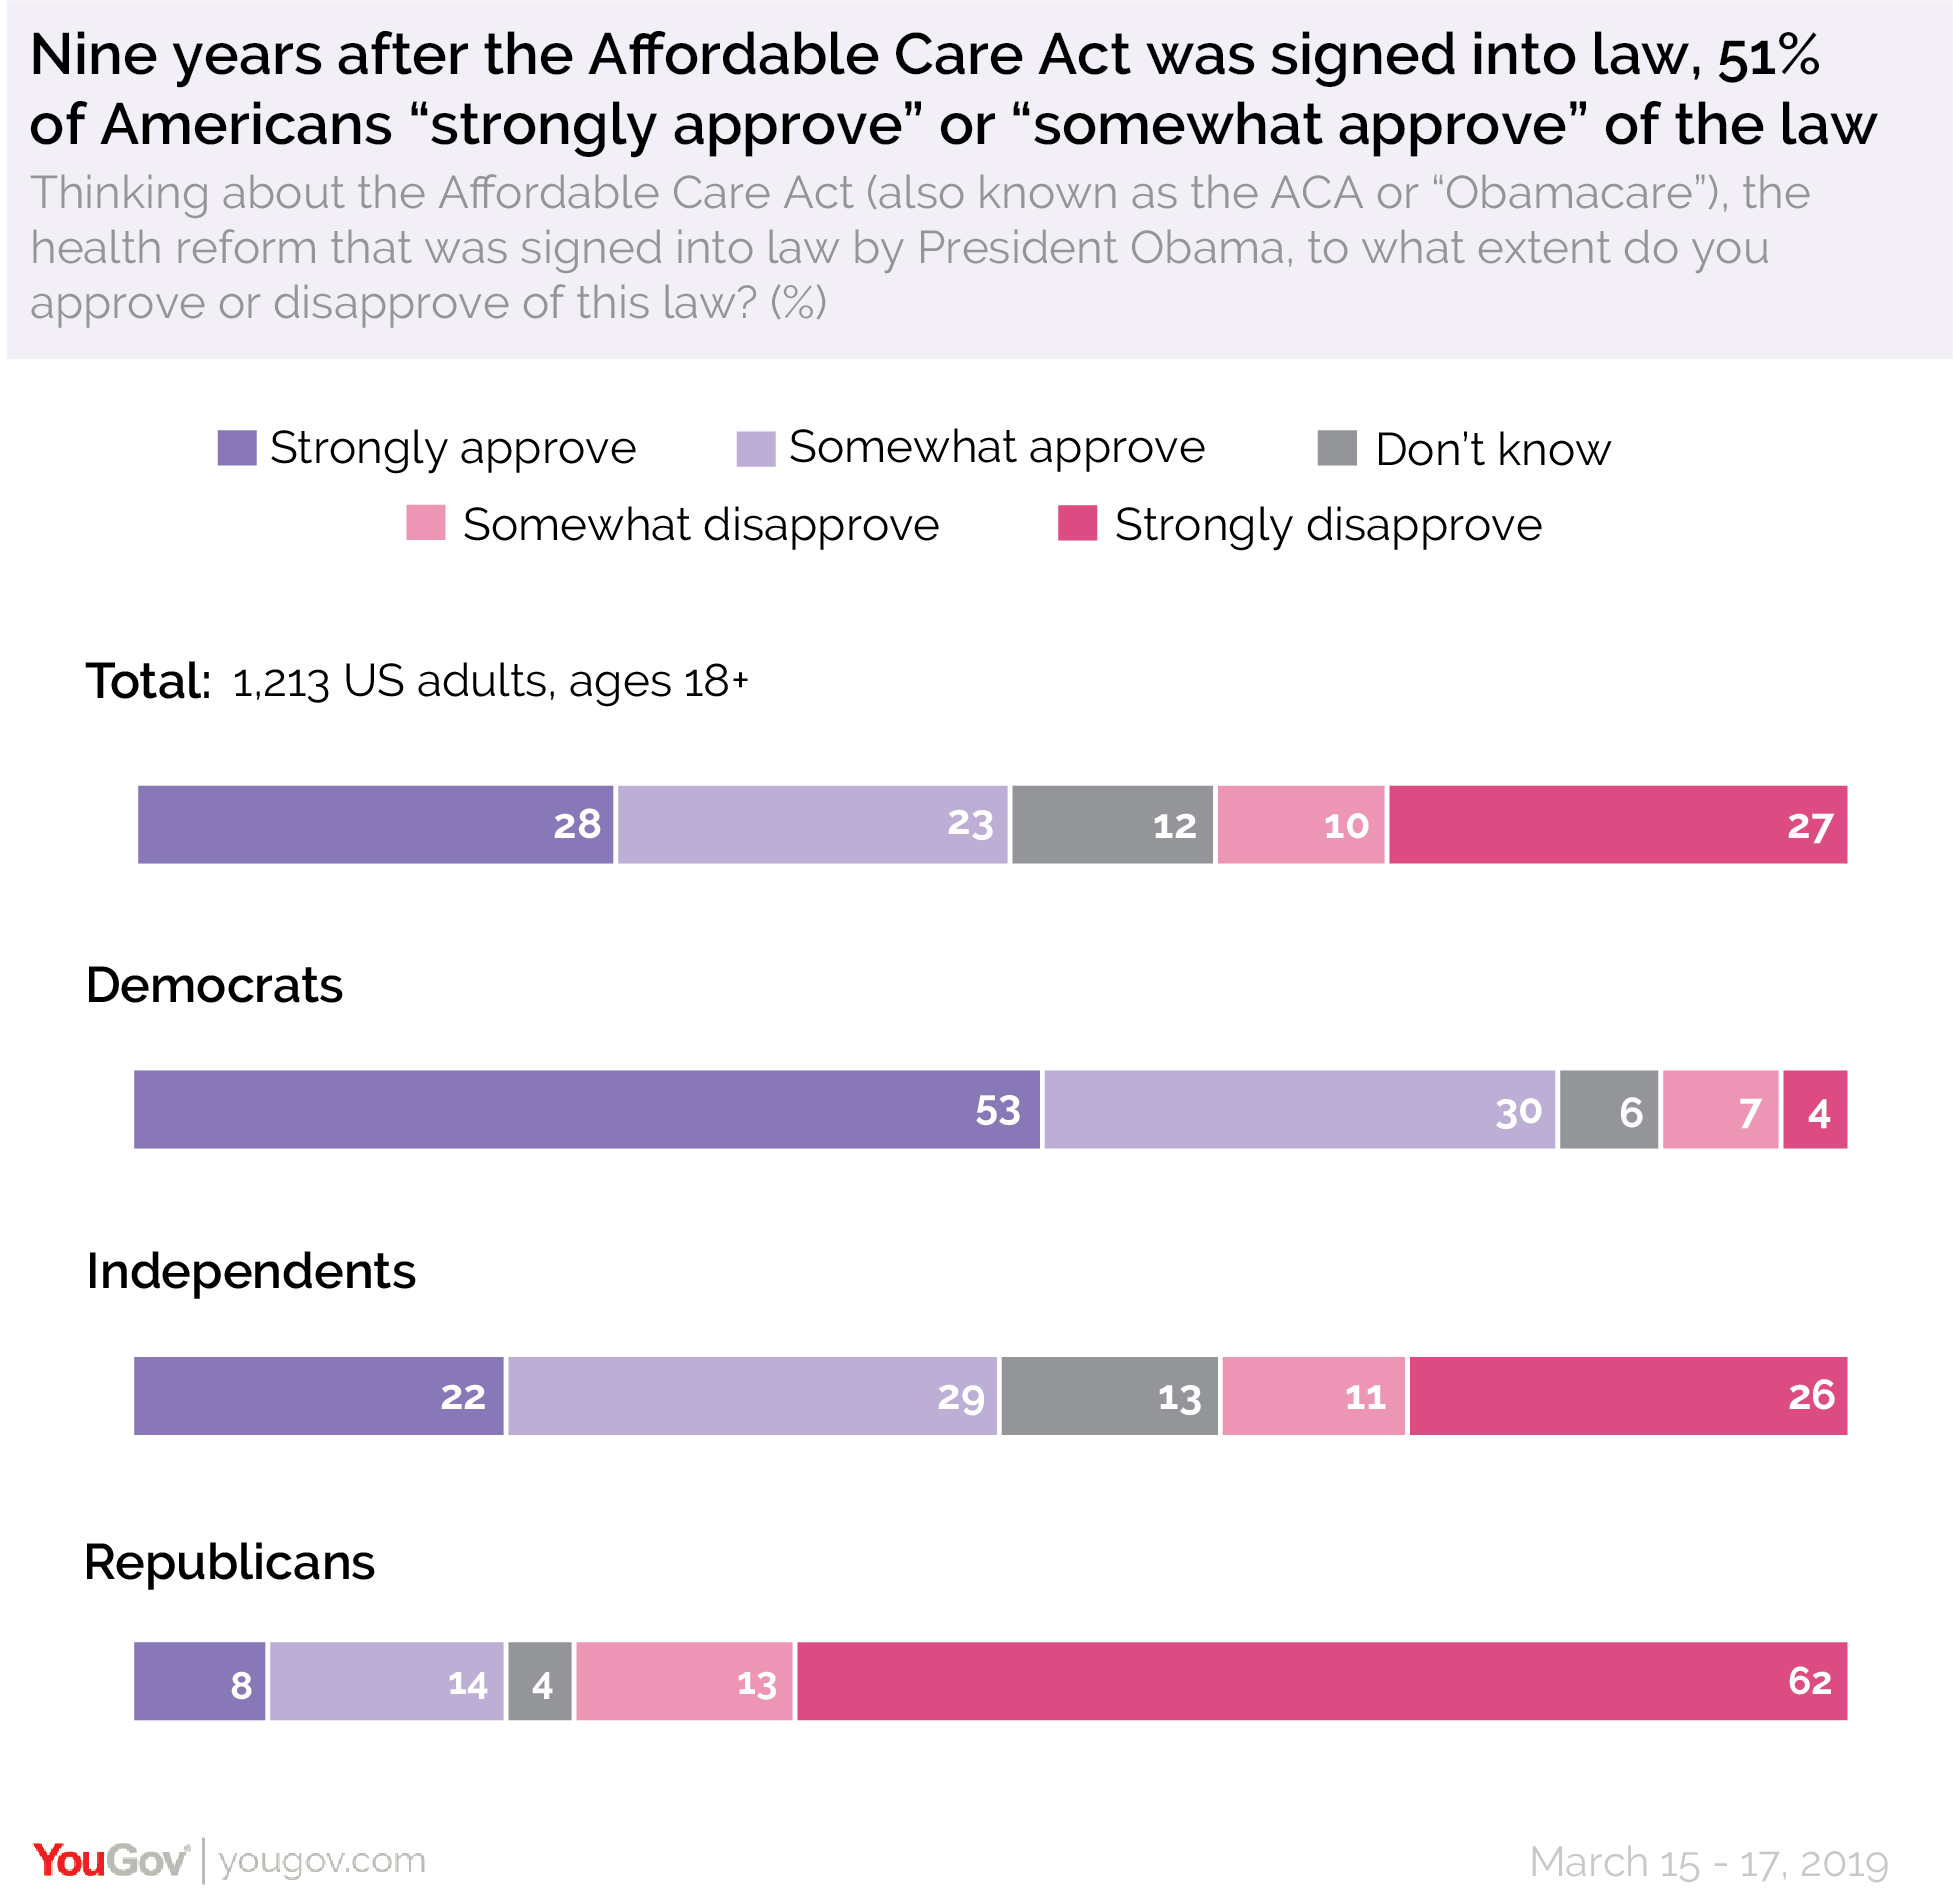 Nine years after the Affordable Care Act was signed into law, 51% of Americans strongly approve or somewhat approve of the law